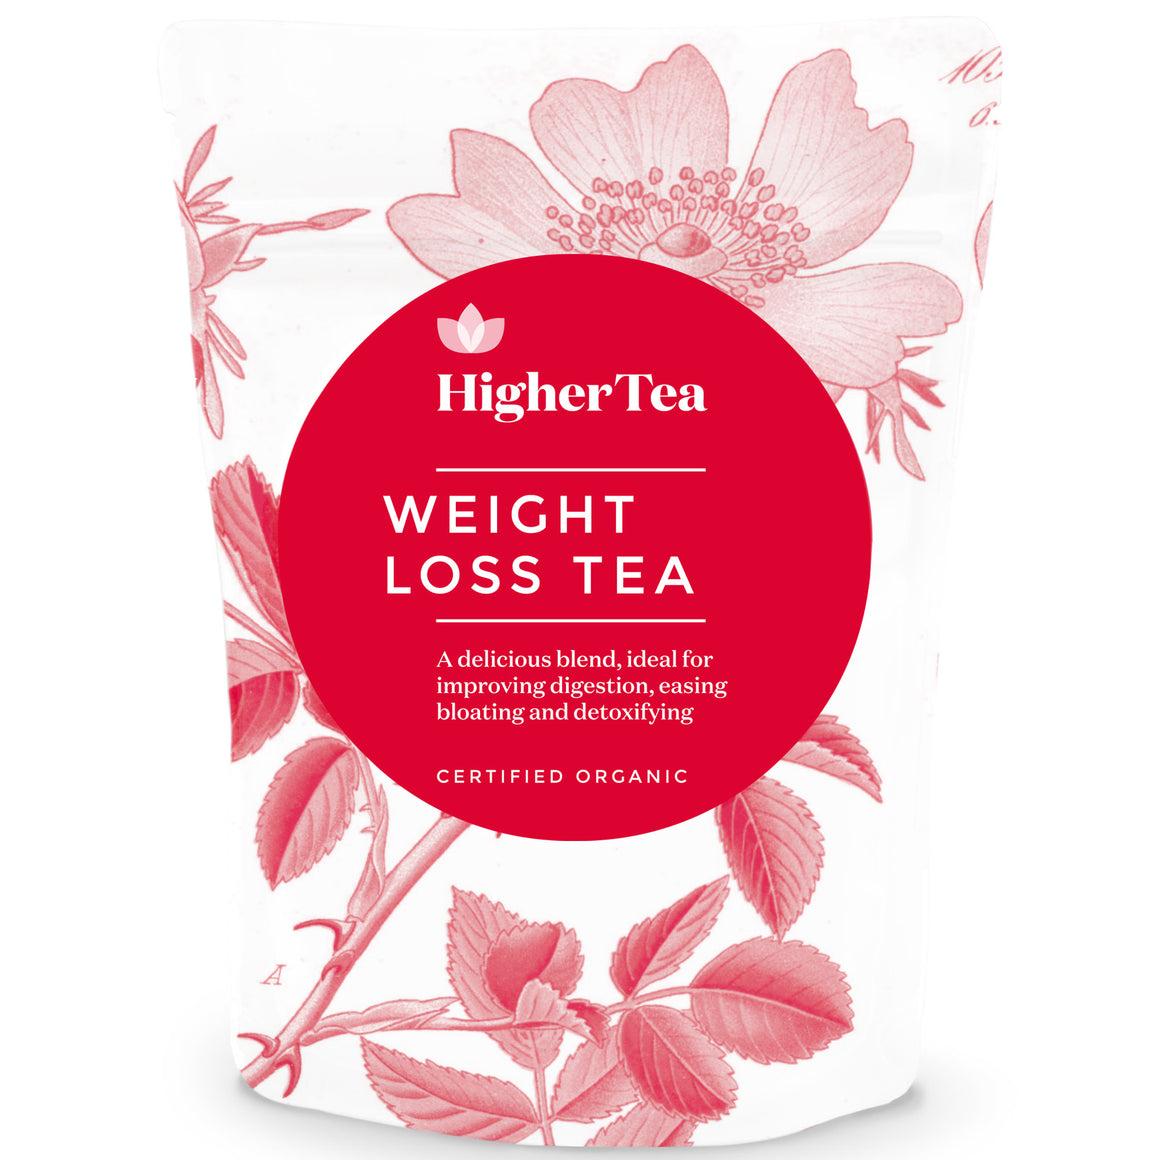 14 Day Body Teatox Weight Loss Tea By Higher Tea, 100% Organic Natural Herbal Body Detox and Gentle Cleanse Formula